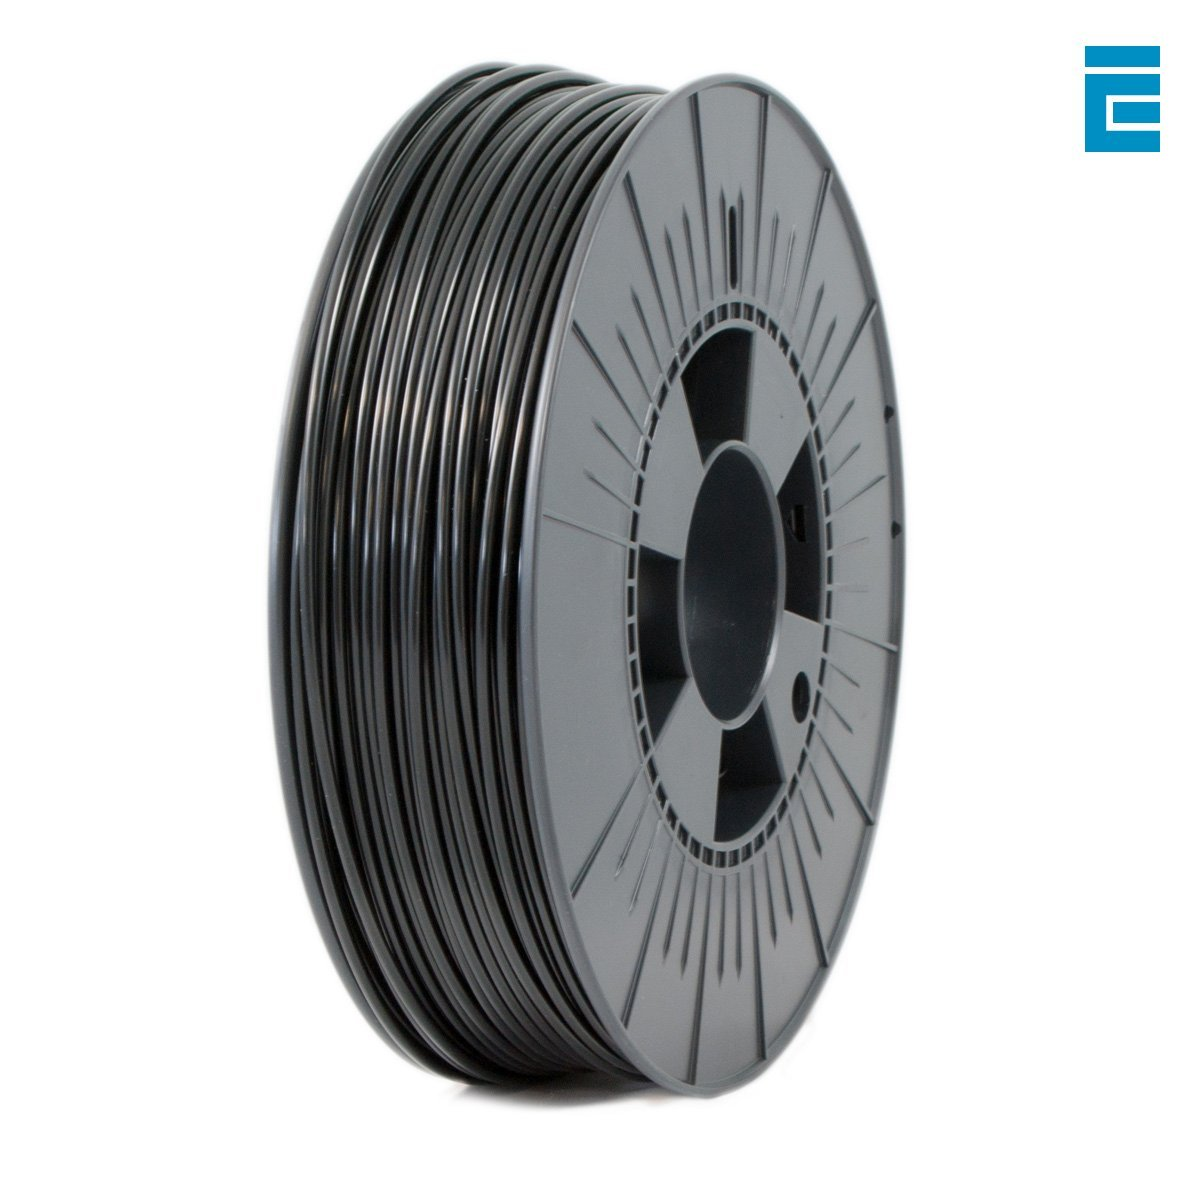 Ice Filaments ICEFIL3PLA004 Filamento PLA 2.85mm, 0.75kg, Nero Dutch Filaments